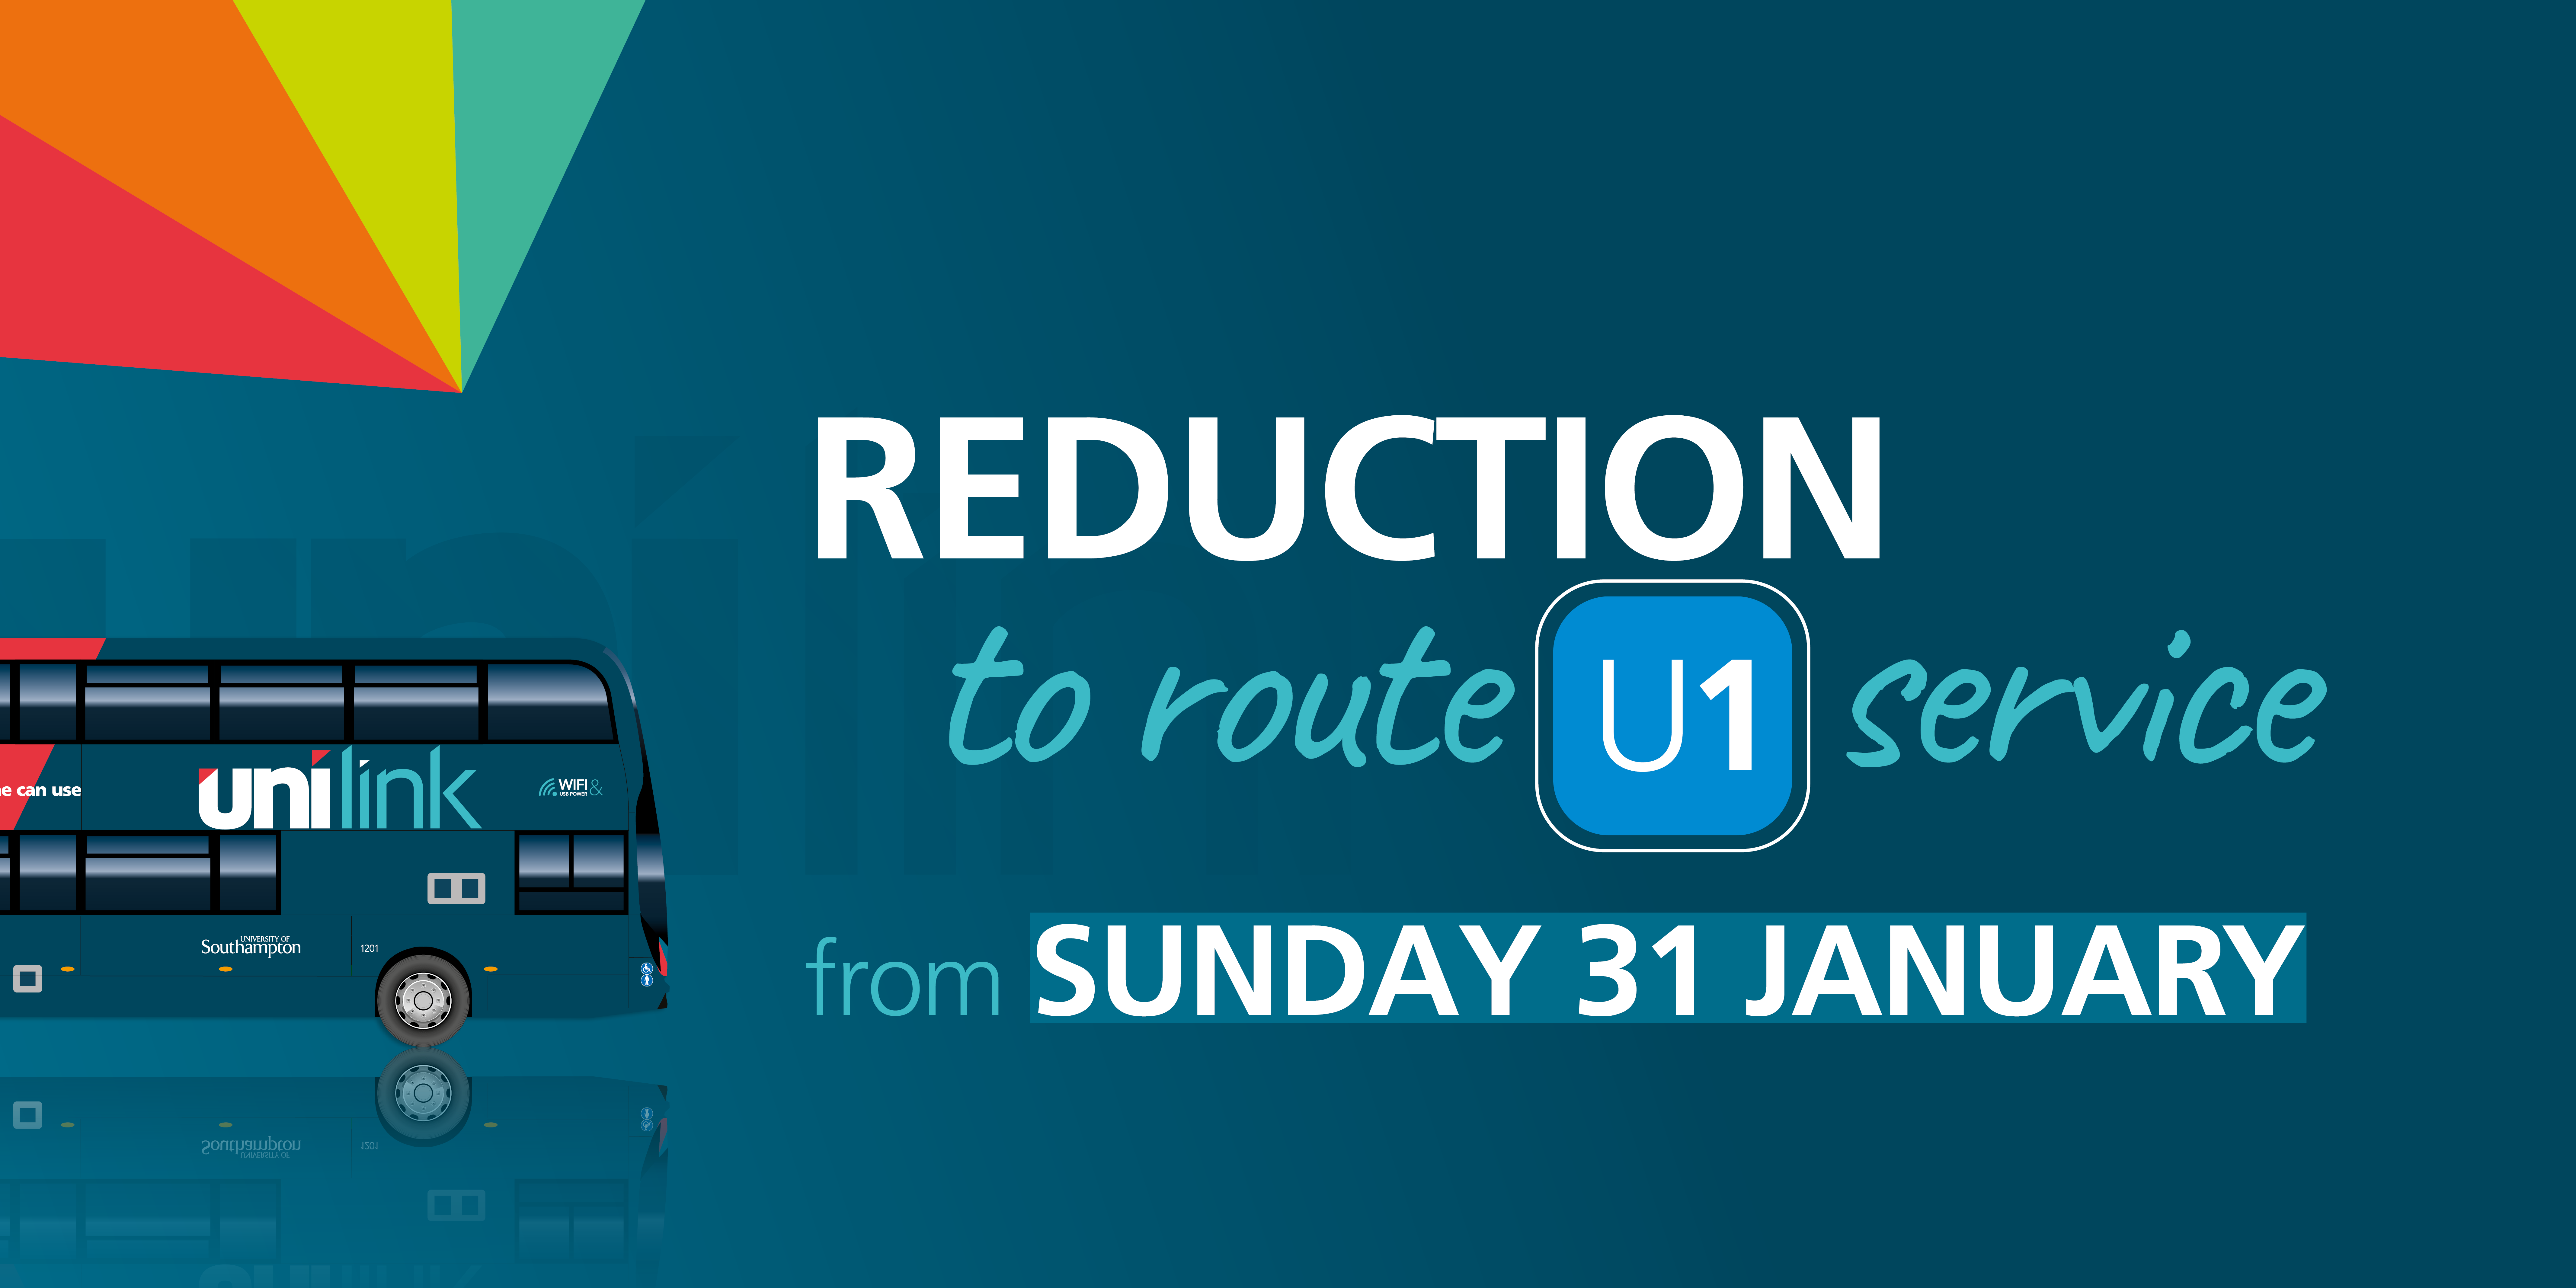 Photo of a Unilink bus with text reading 'reduction to route U1 service from Sunday 31 January'